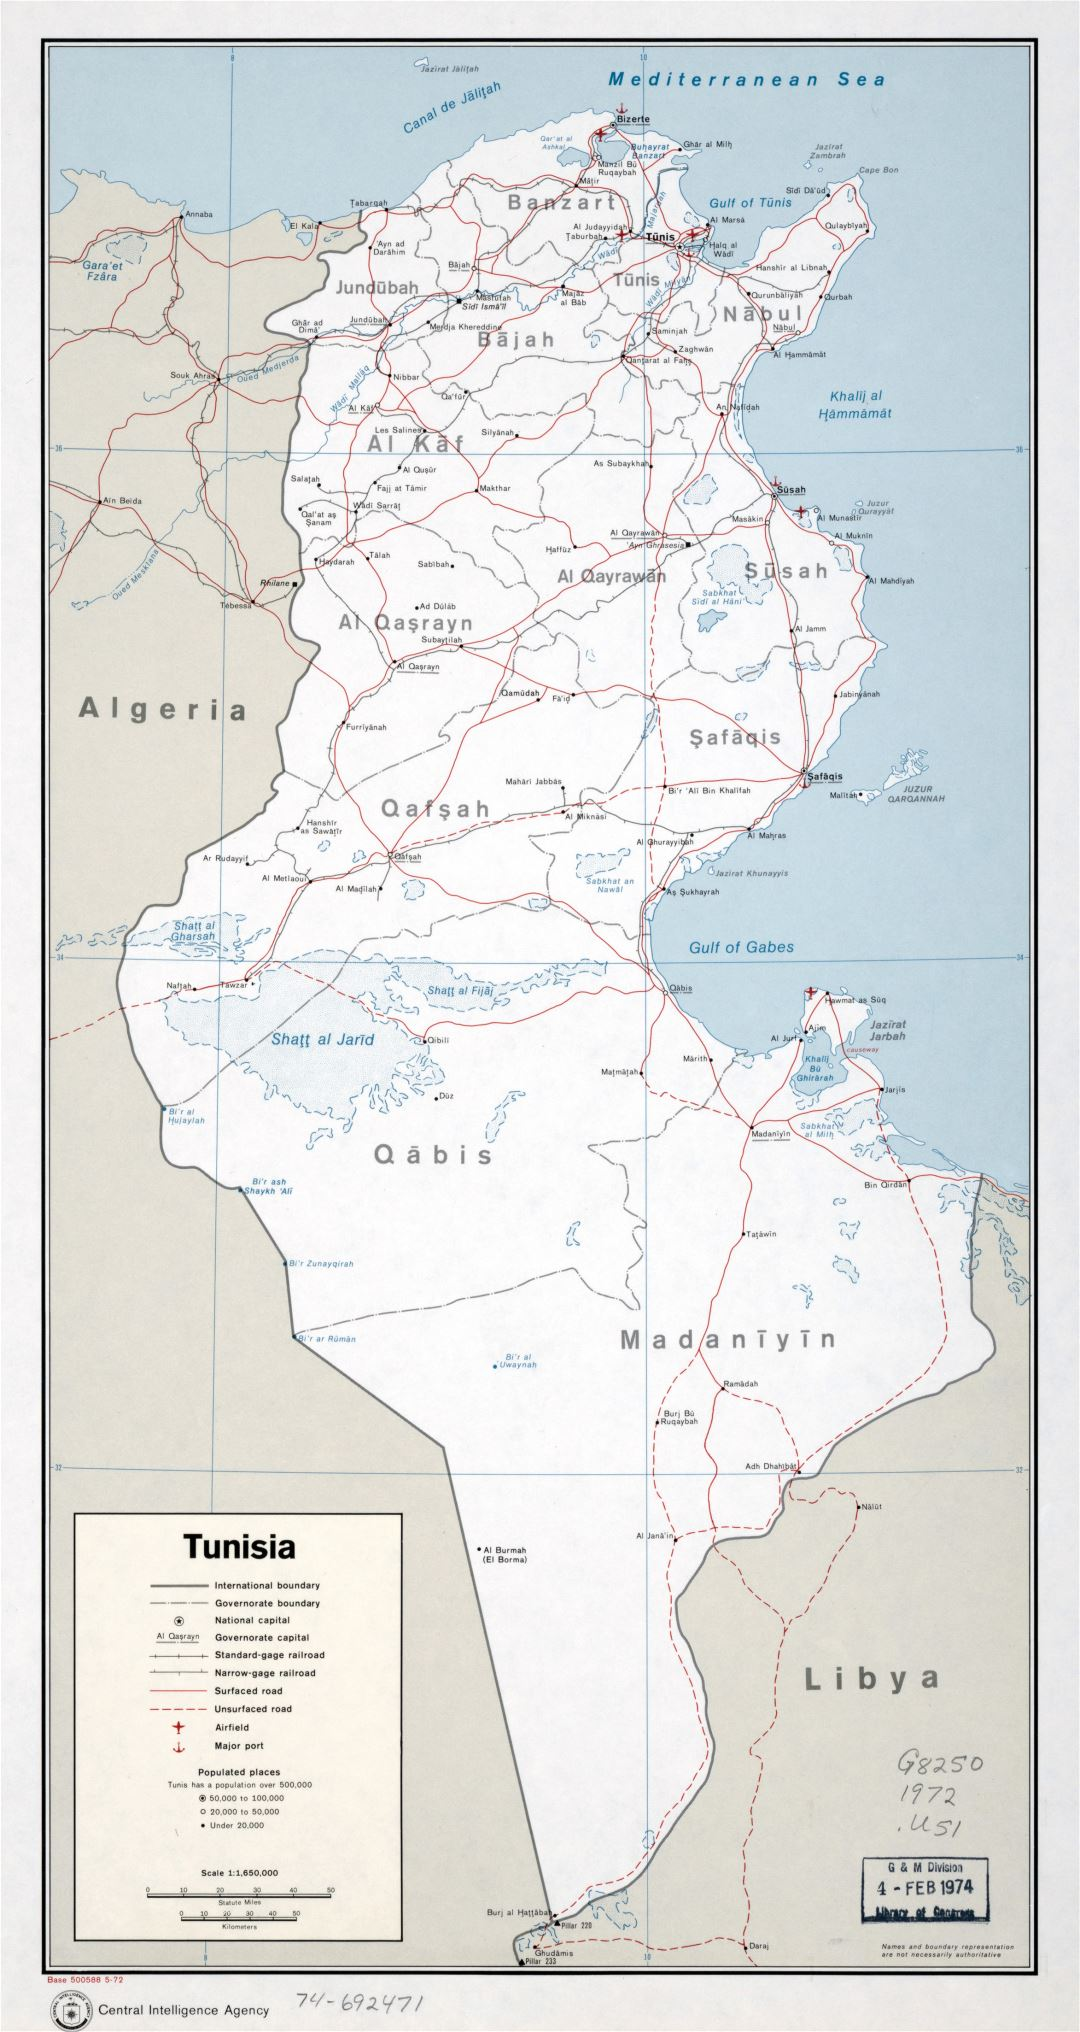 Large detailed political and administrative map of Tunisia with roads, railroads, major cities, ports and airports - 1972